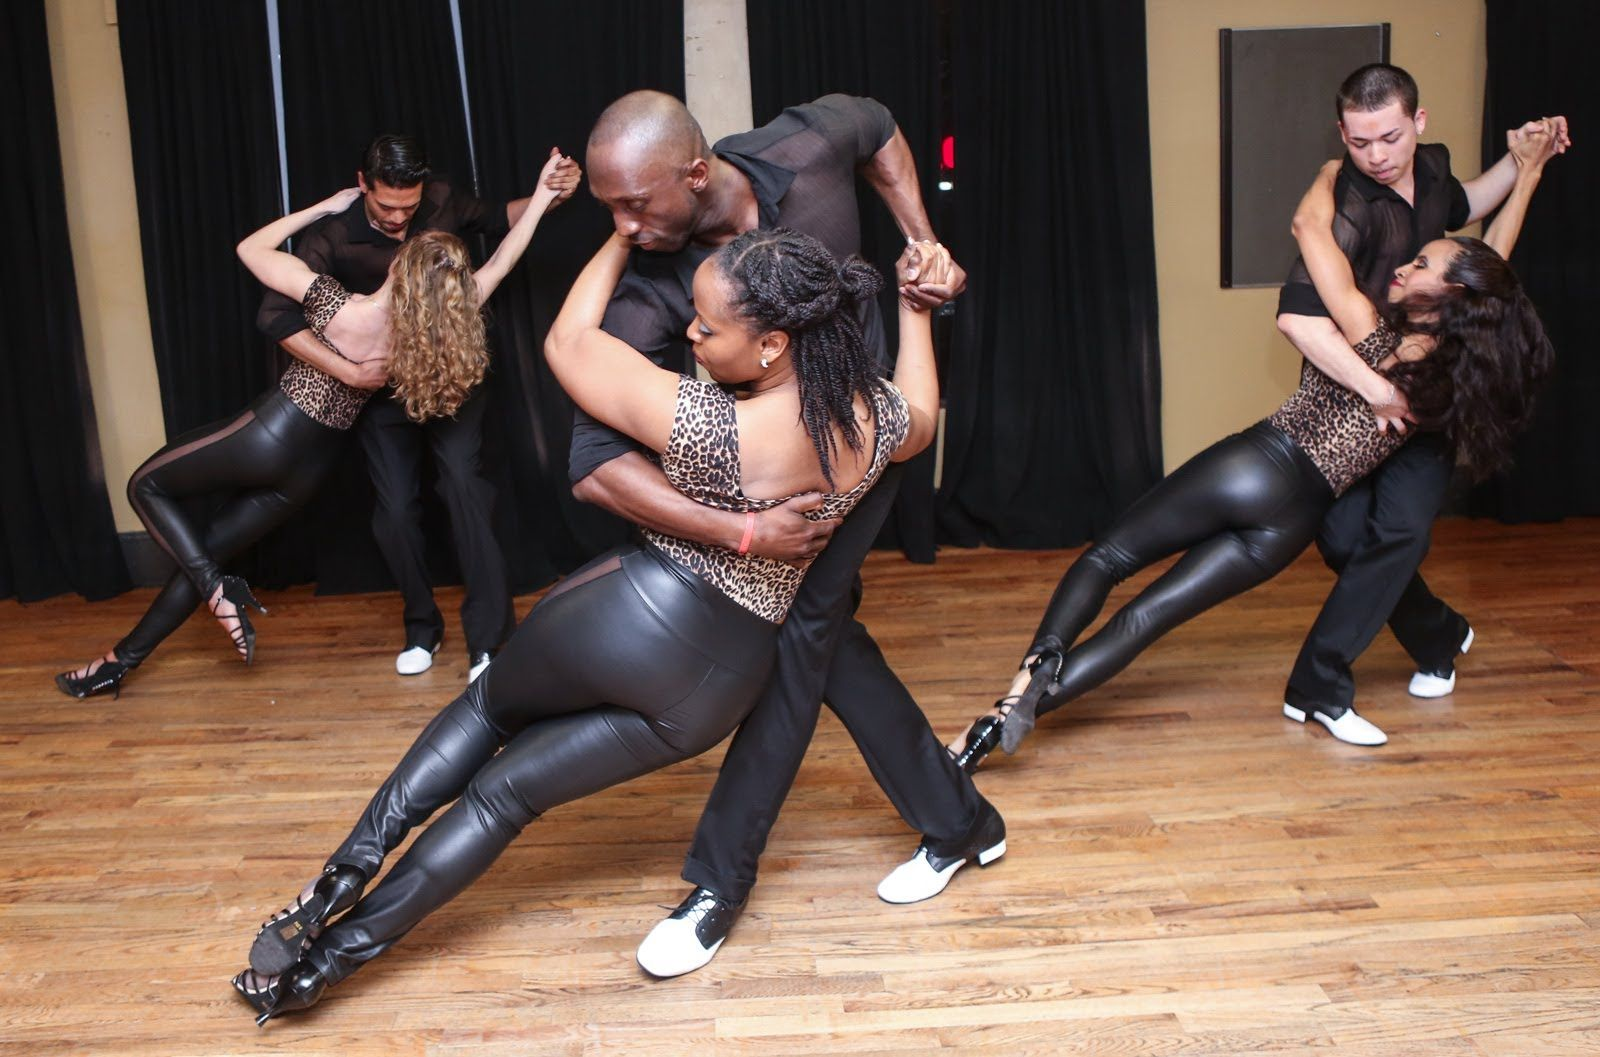 the most popular dance genres essay Latin popular music in the united states began with a wave of dance bands in the 1930s and 1950s the most popular styles included the conga, rumba, and mambo in the 1950s perez prado made the cha-cha-cha famous.